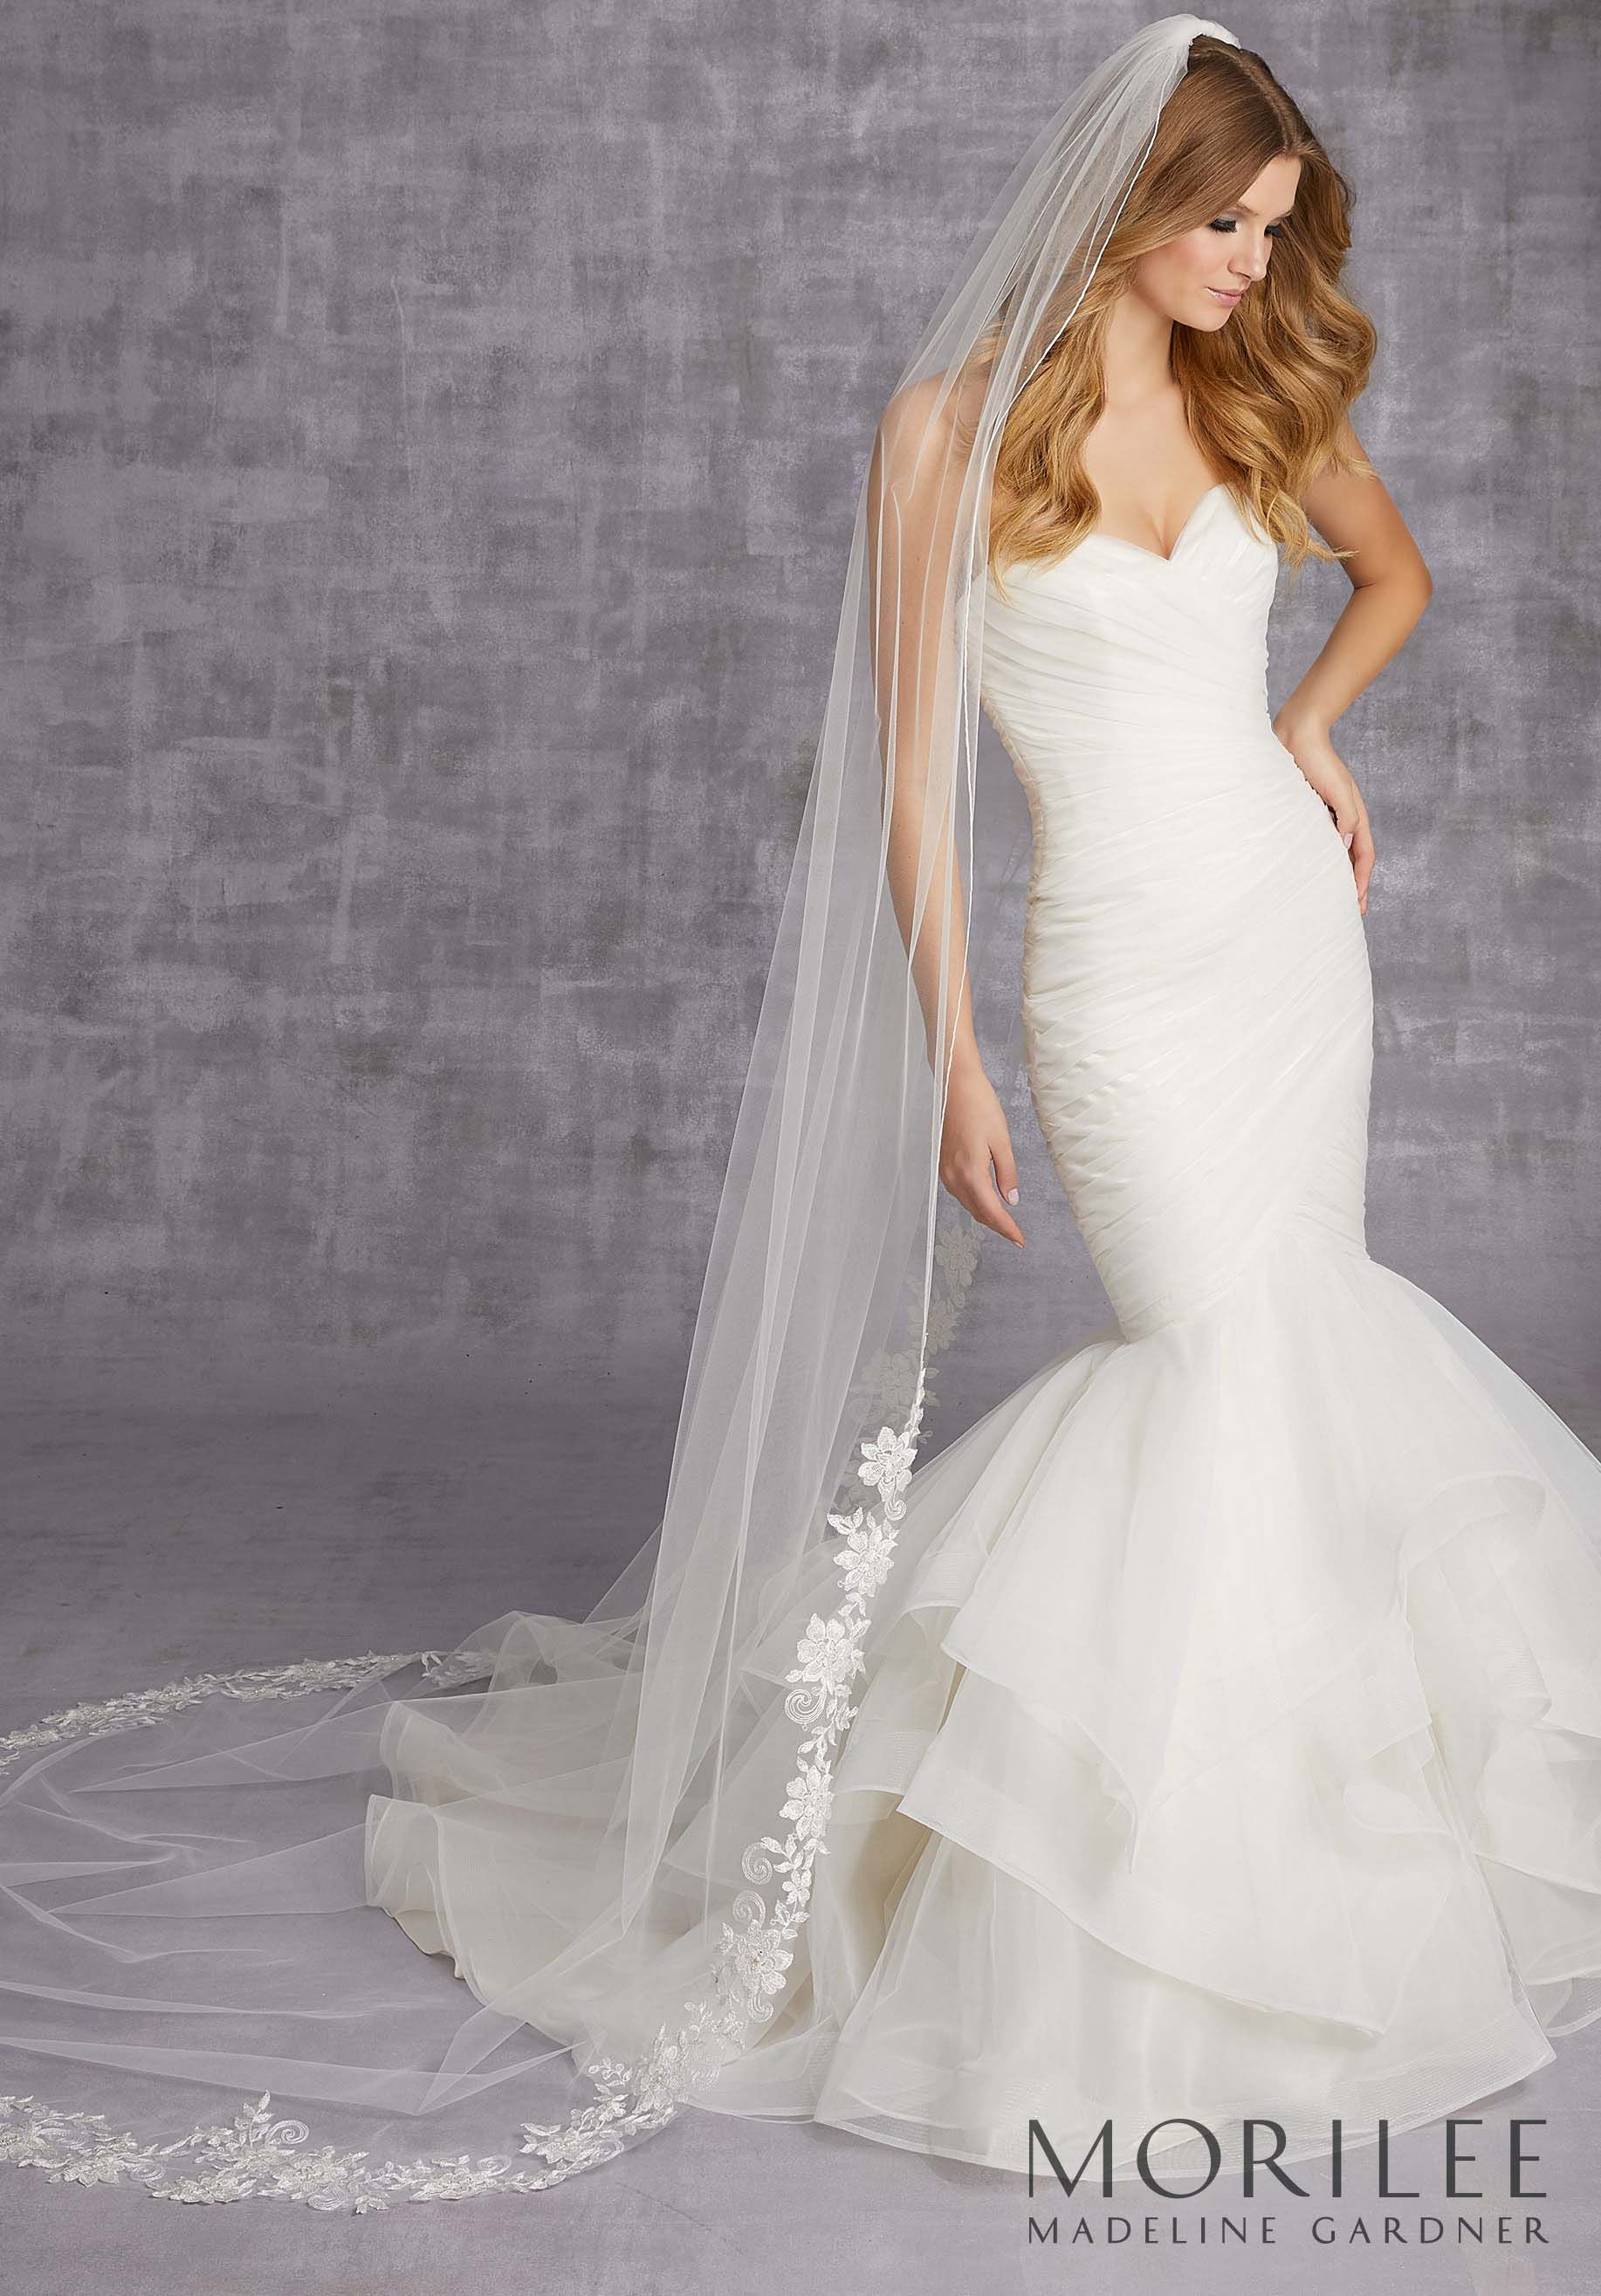 Mori lee madeline gardner wedding dress  Morilee  Madeline Gardner style VL  Stitched Edge Wedding